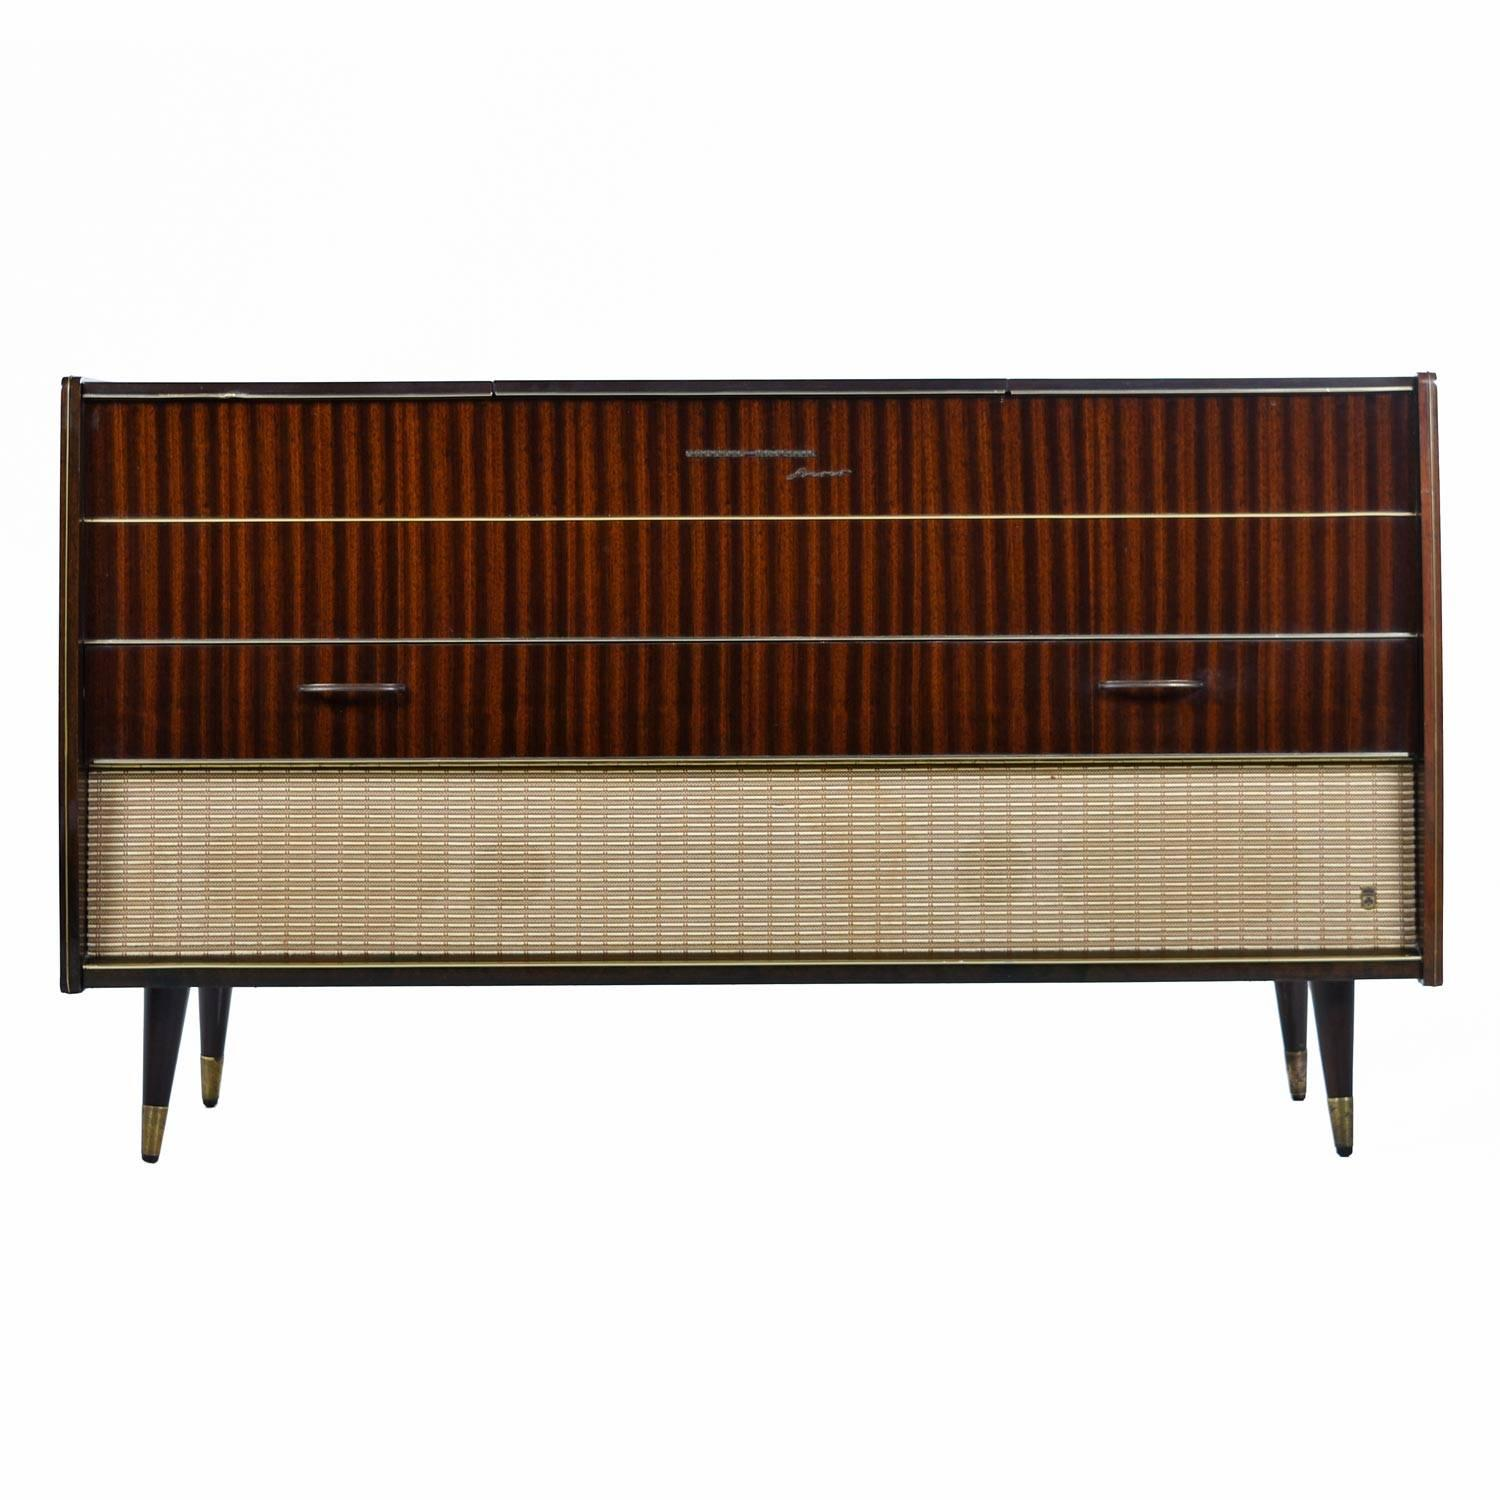 German Grundig Majestic Turntable Console Stereo Credenza, Fully Serviced  And Working For Sale